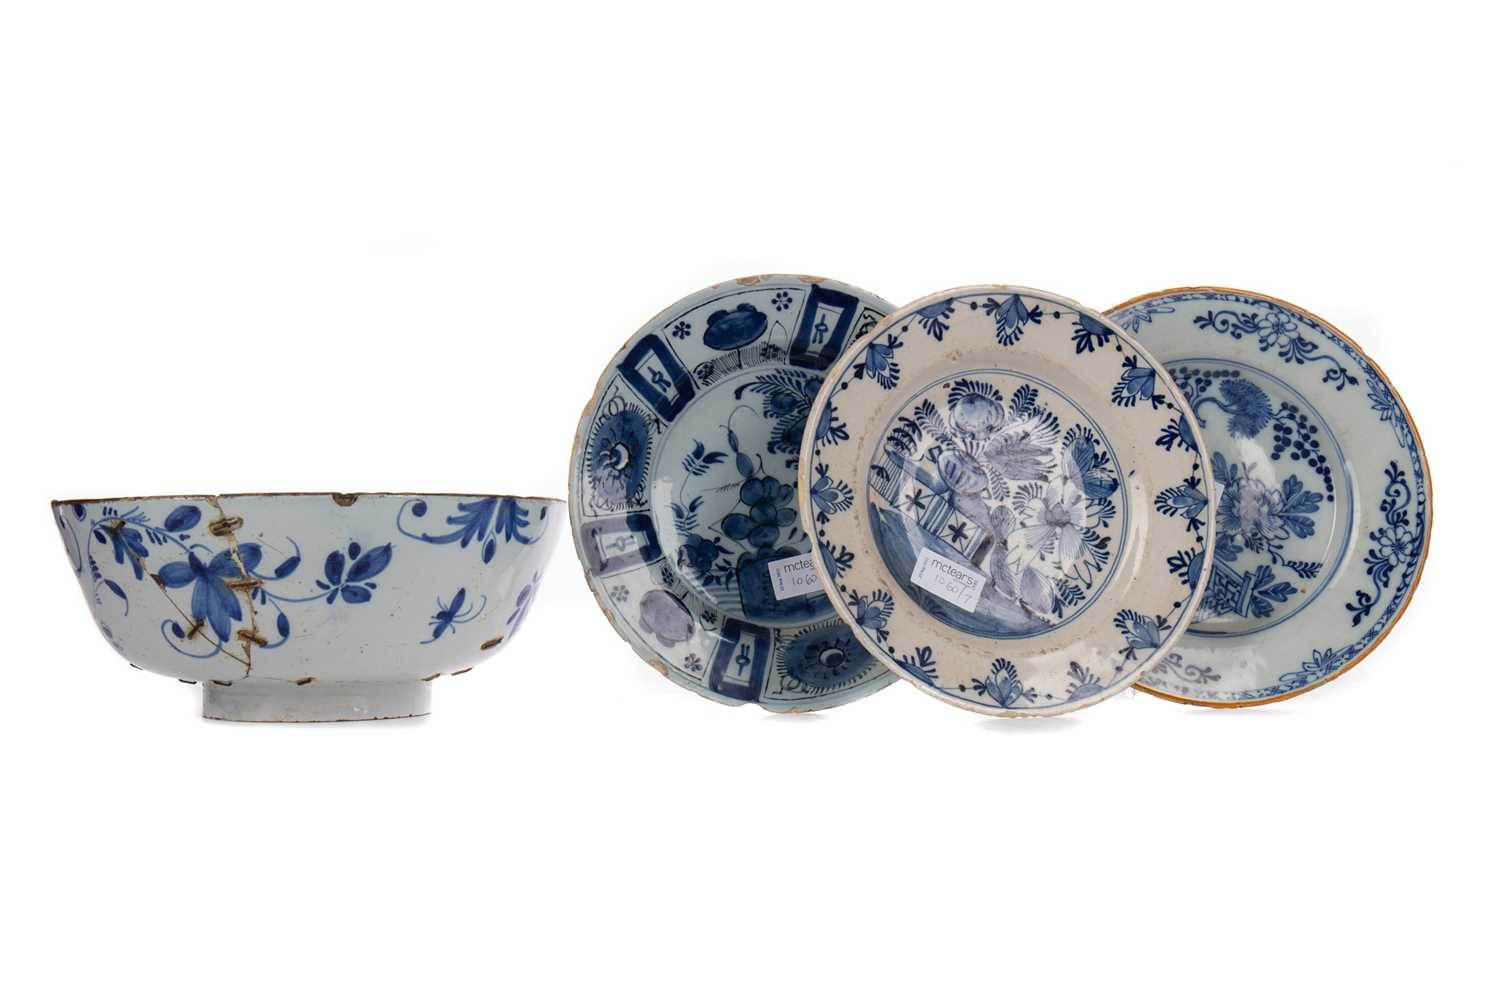 Lot 1060 - A PAIR OF 18TH CENTURY DUTCH DELFT CIRCULAR PLATES AND OTHERS